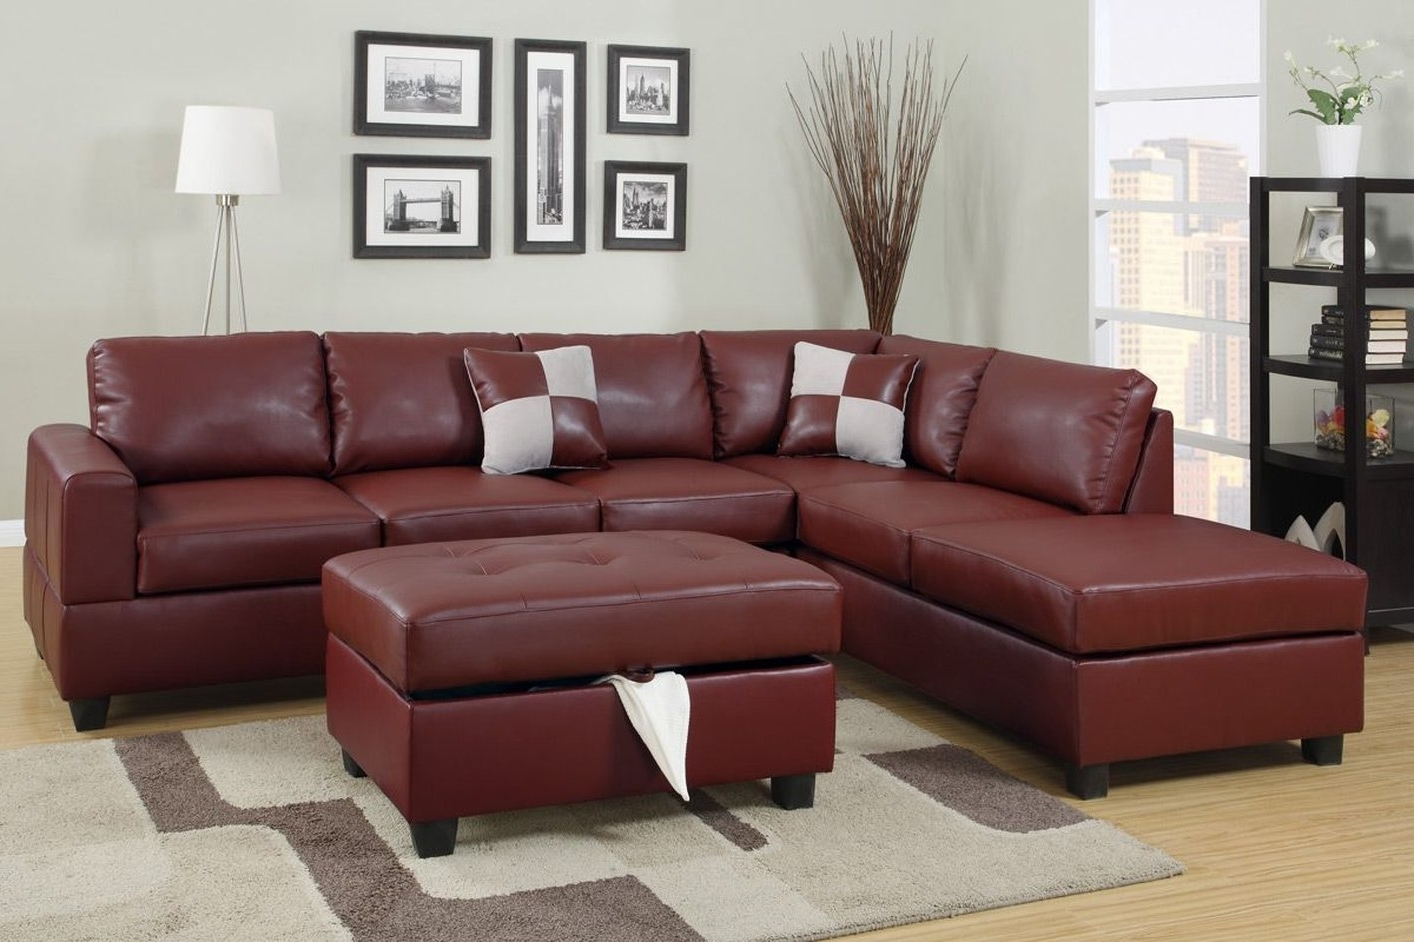 April Red Leather Sectional Sofa And Ottoman – Steal A Sofa With Well Known Red Leather Sectional Couches (View 3 of 20)